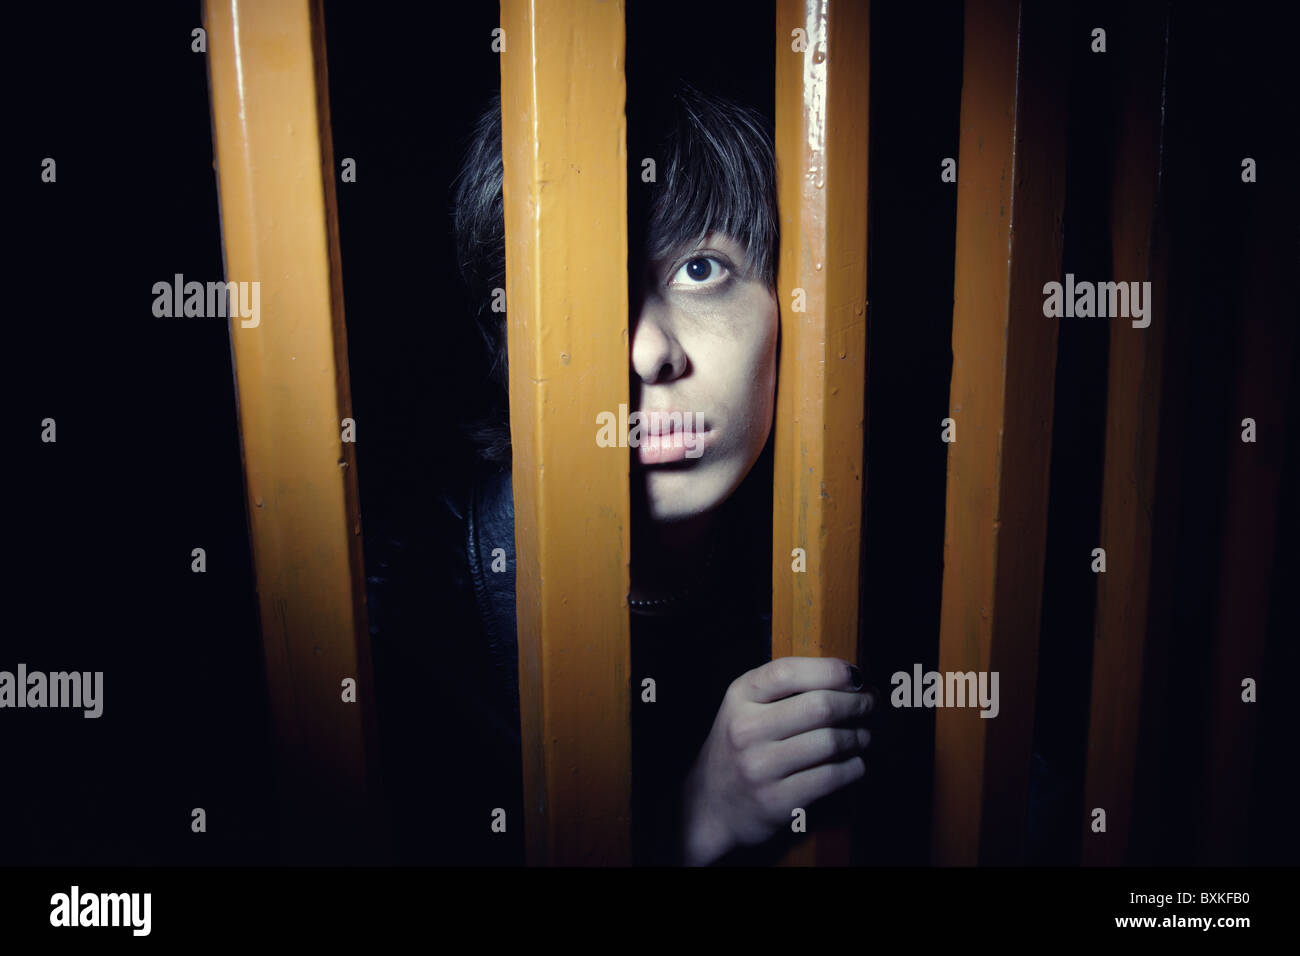 Afraid young man hiding in the dark interior. Natural lights and shadows - Stock Image